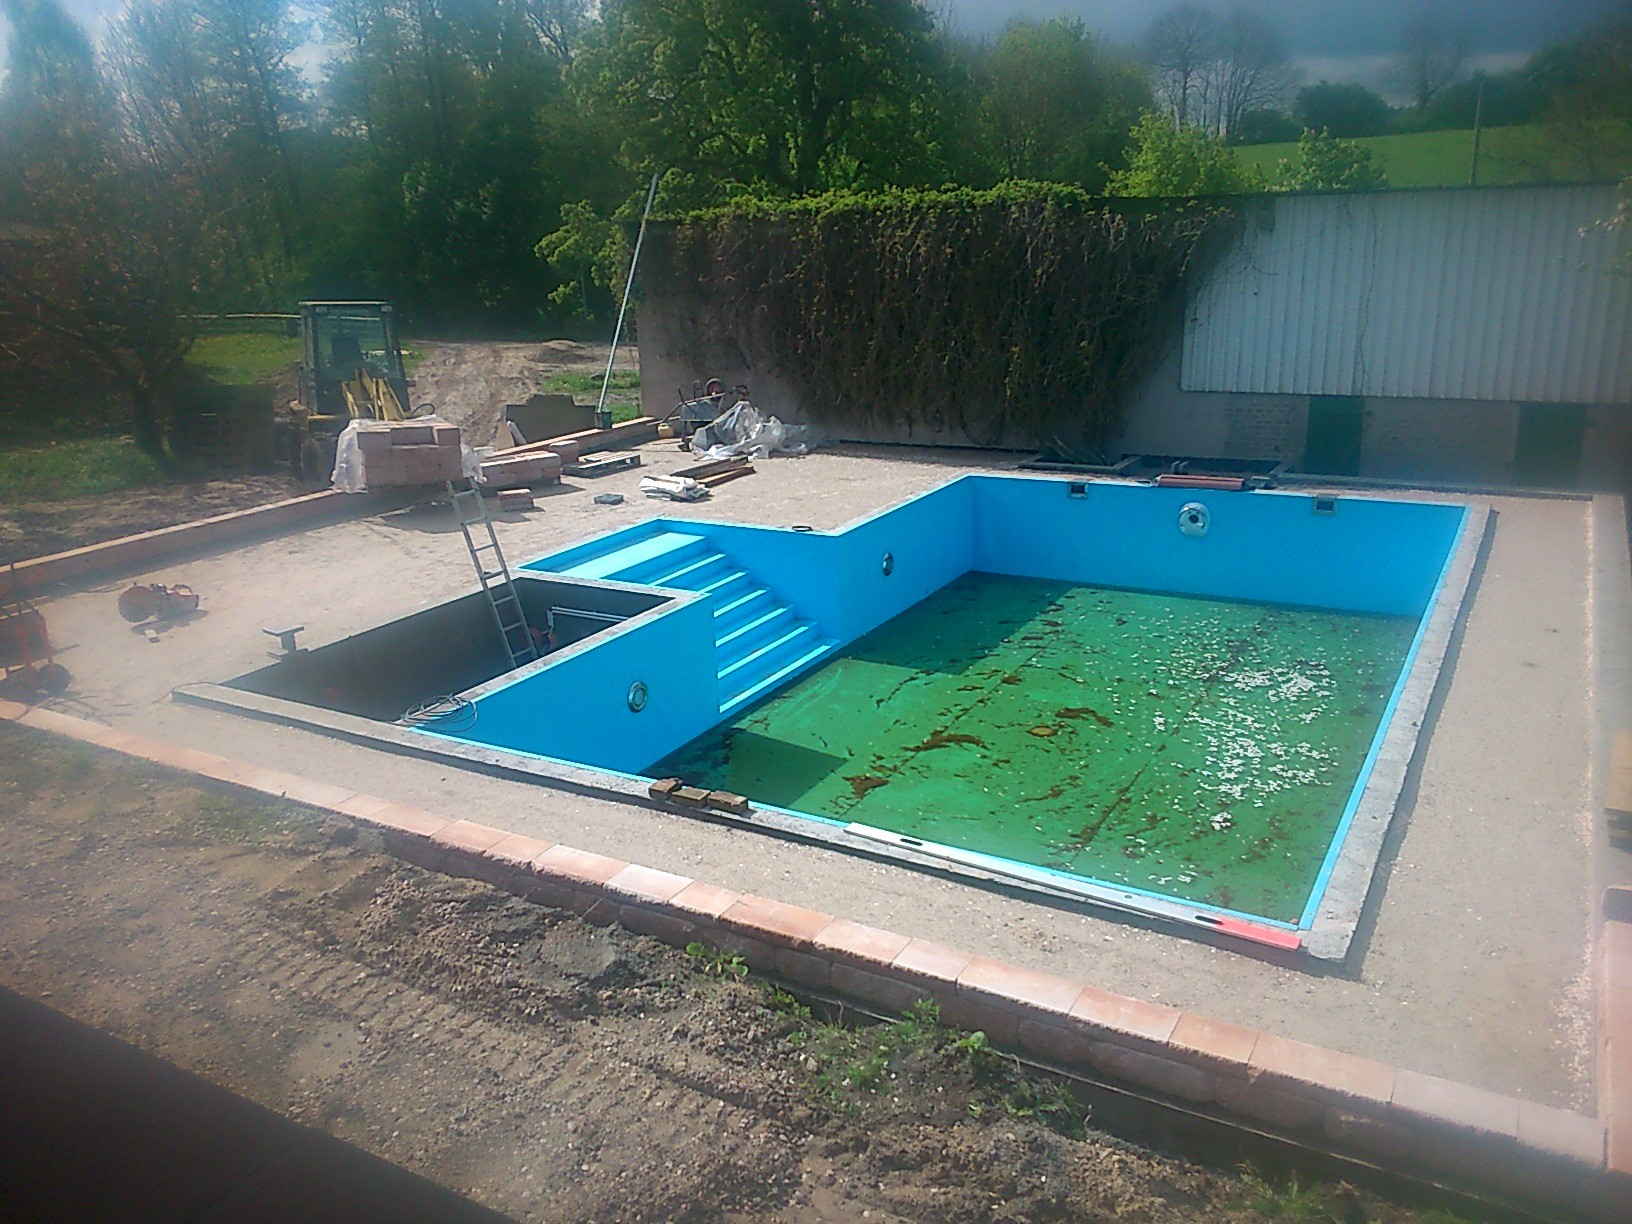 Pool Bodensauger Funktionsweise Bodensauger Pool Funktionsweise